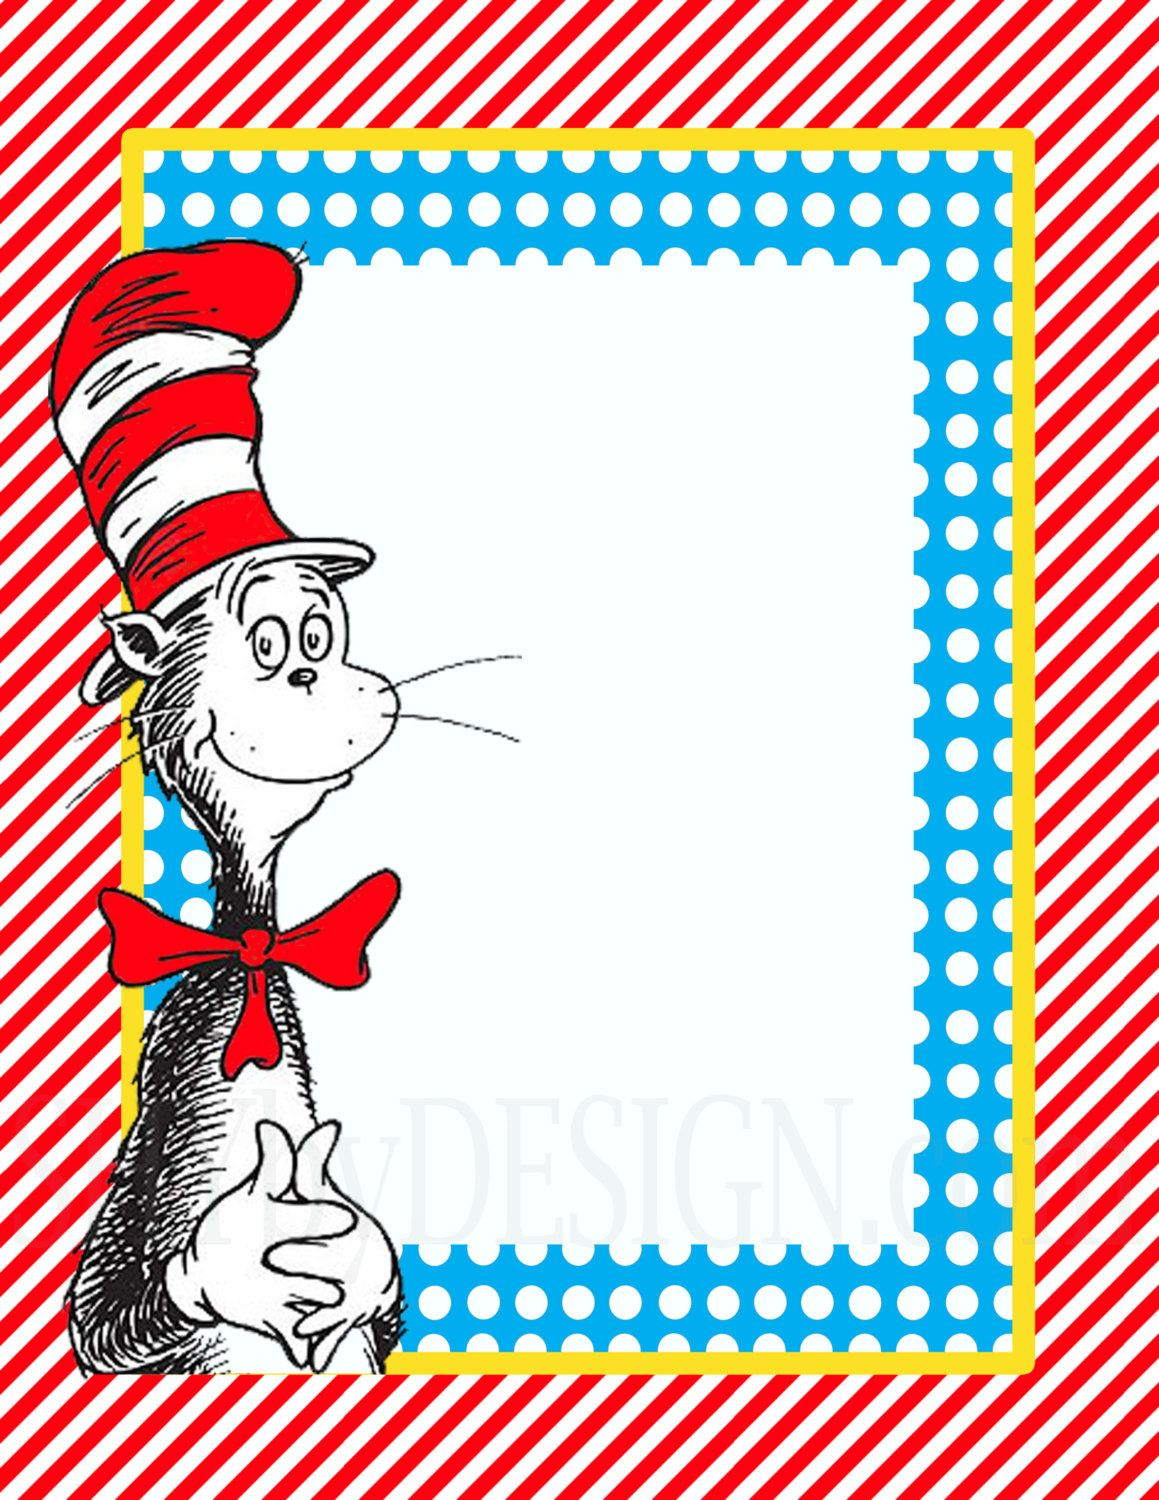 dr seuss birthday card template - dr seuss border templates like this item its so